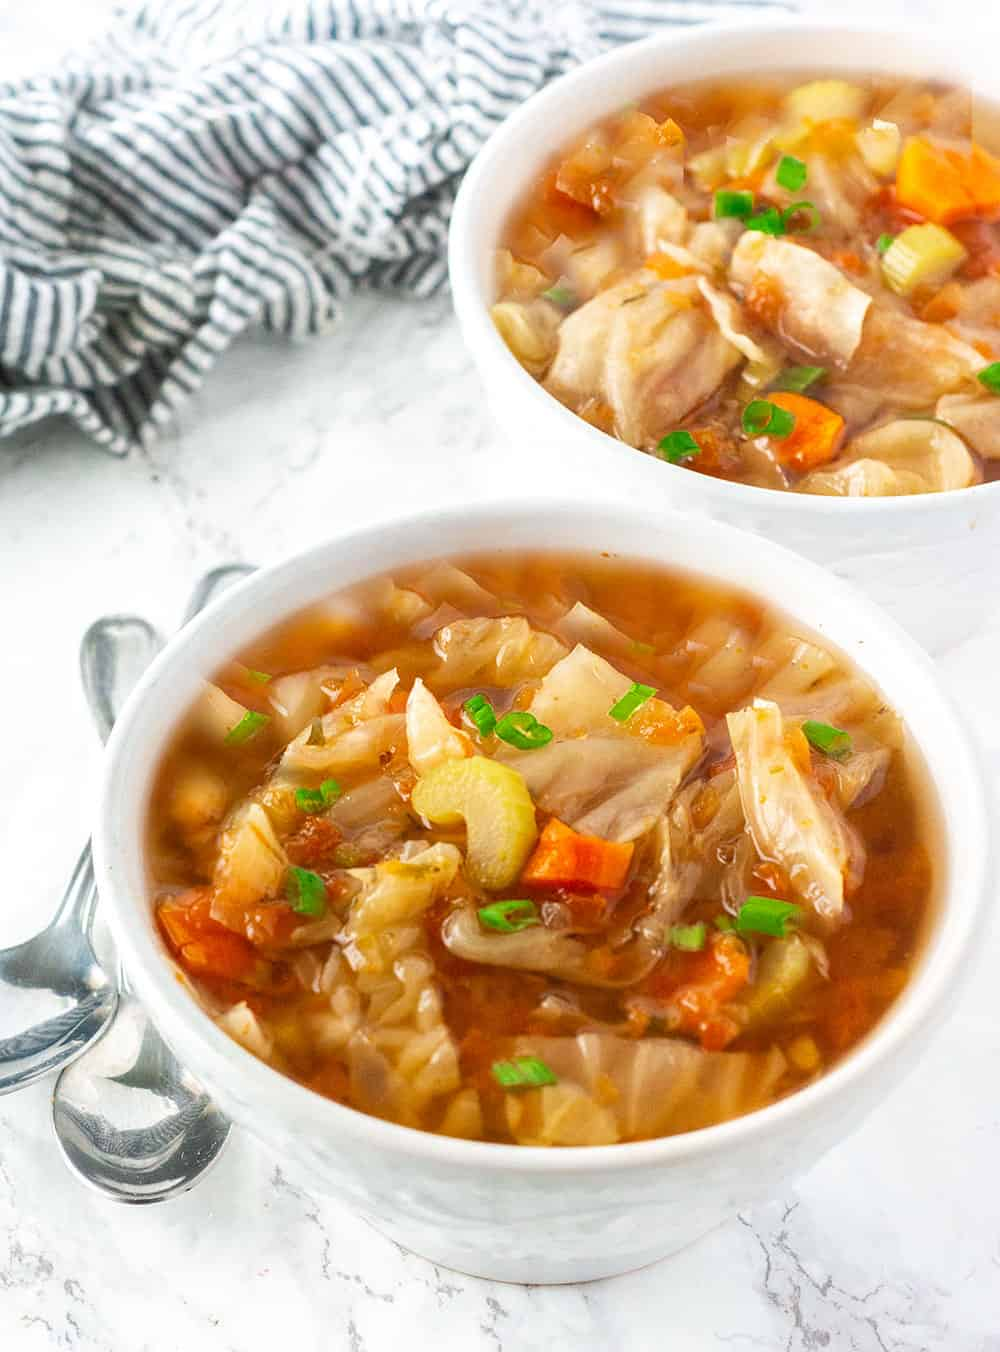 Best Vegan Cabbage Soup in white bowls with cabbage, carrot, and scallion